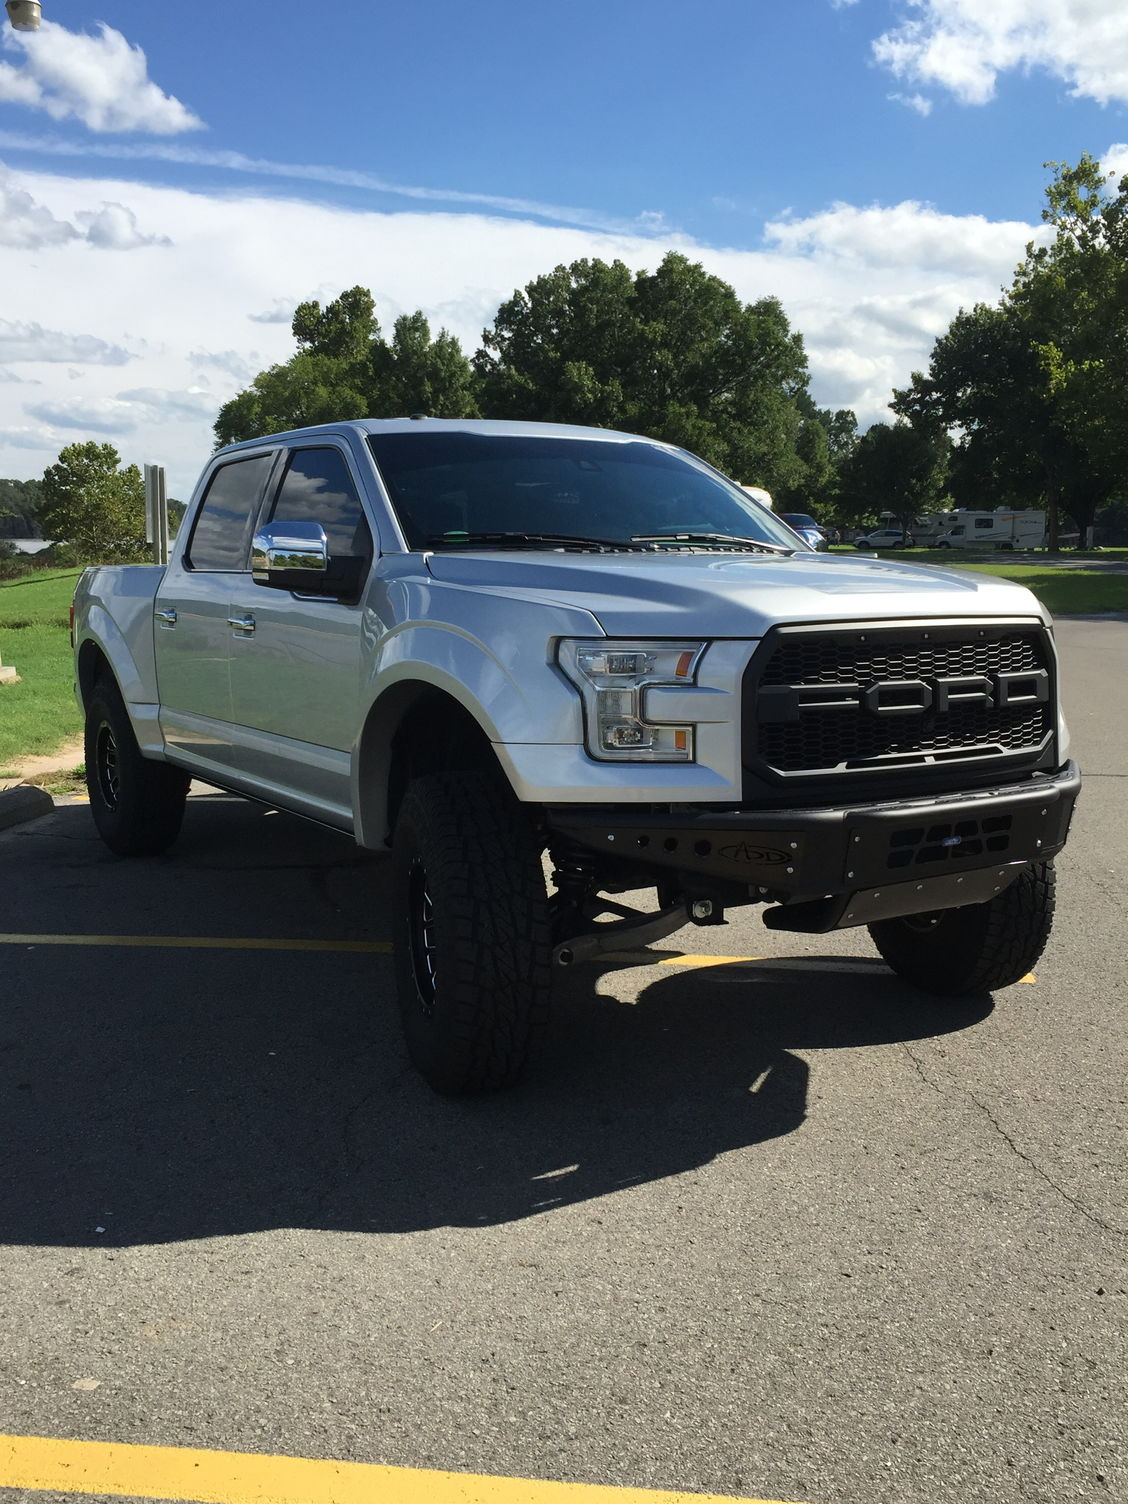 37x12 50x17 procomp at sport tires 17 procomp wheels procomp prototype mid travel suspension kit g2 back flip bed cover and bed rug corsa resonator delete